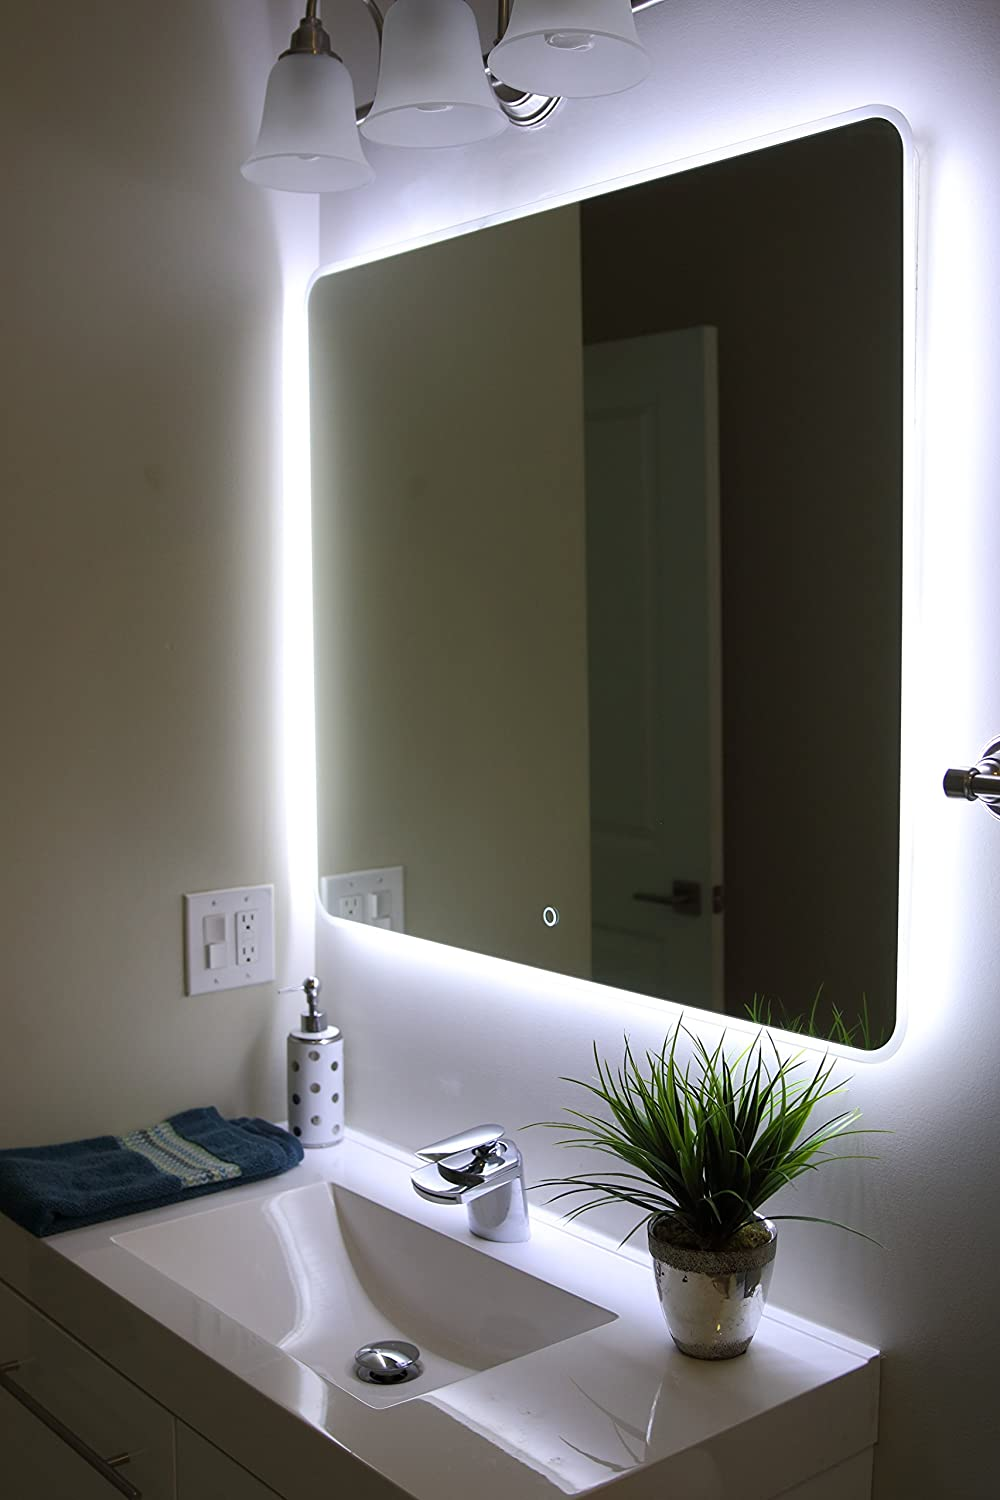 Amazon windbay backlit led light bathroom vanity sink mirror amazon windbay backlit led light bathroom vanity sink mirror illuminated mirror 36 home kitchen mozeypictures Image collections